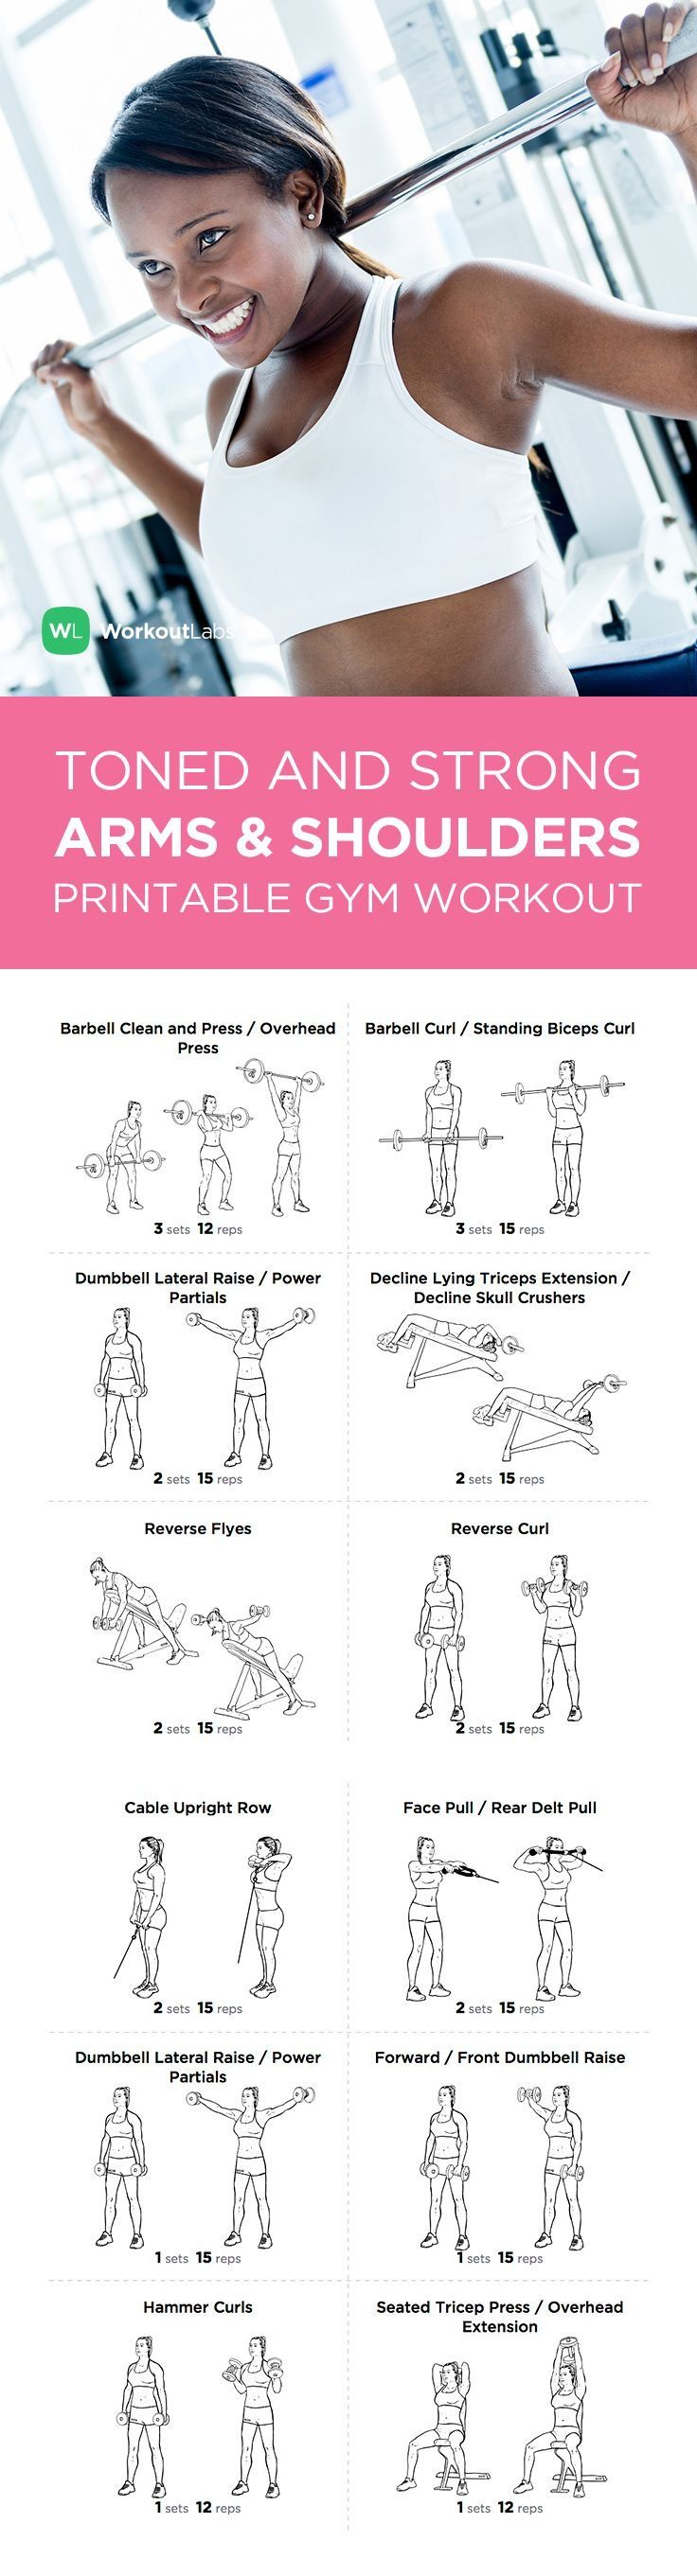 Pin by lorraine offord on personal pinterest workout